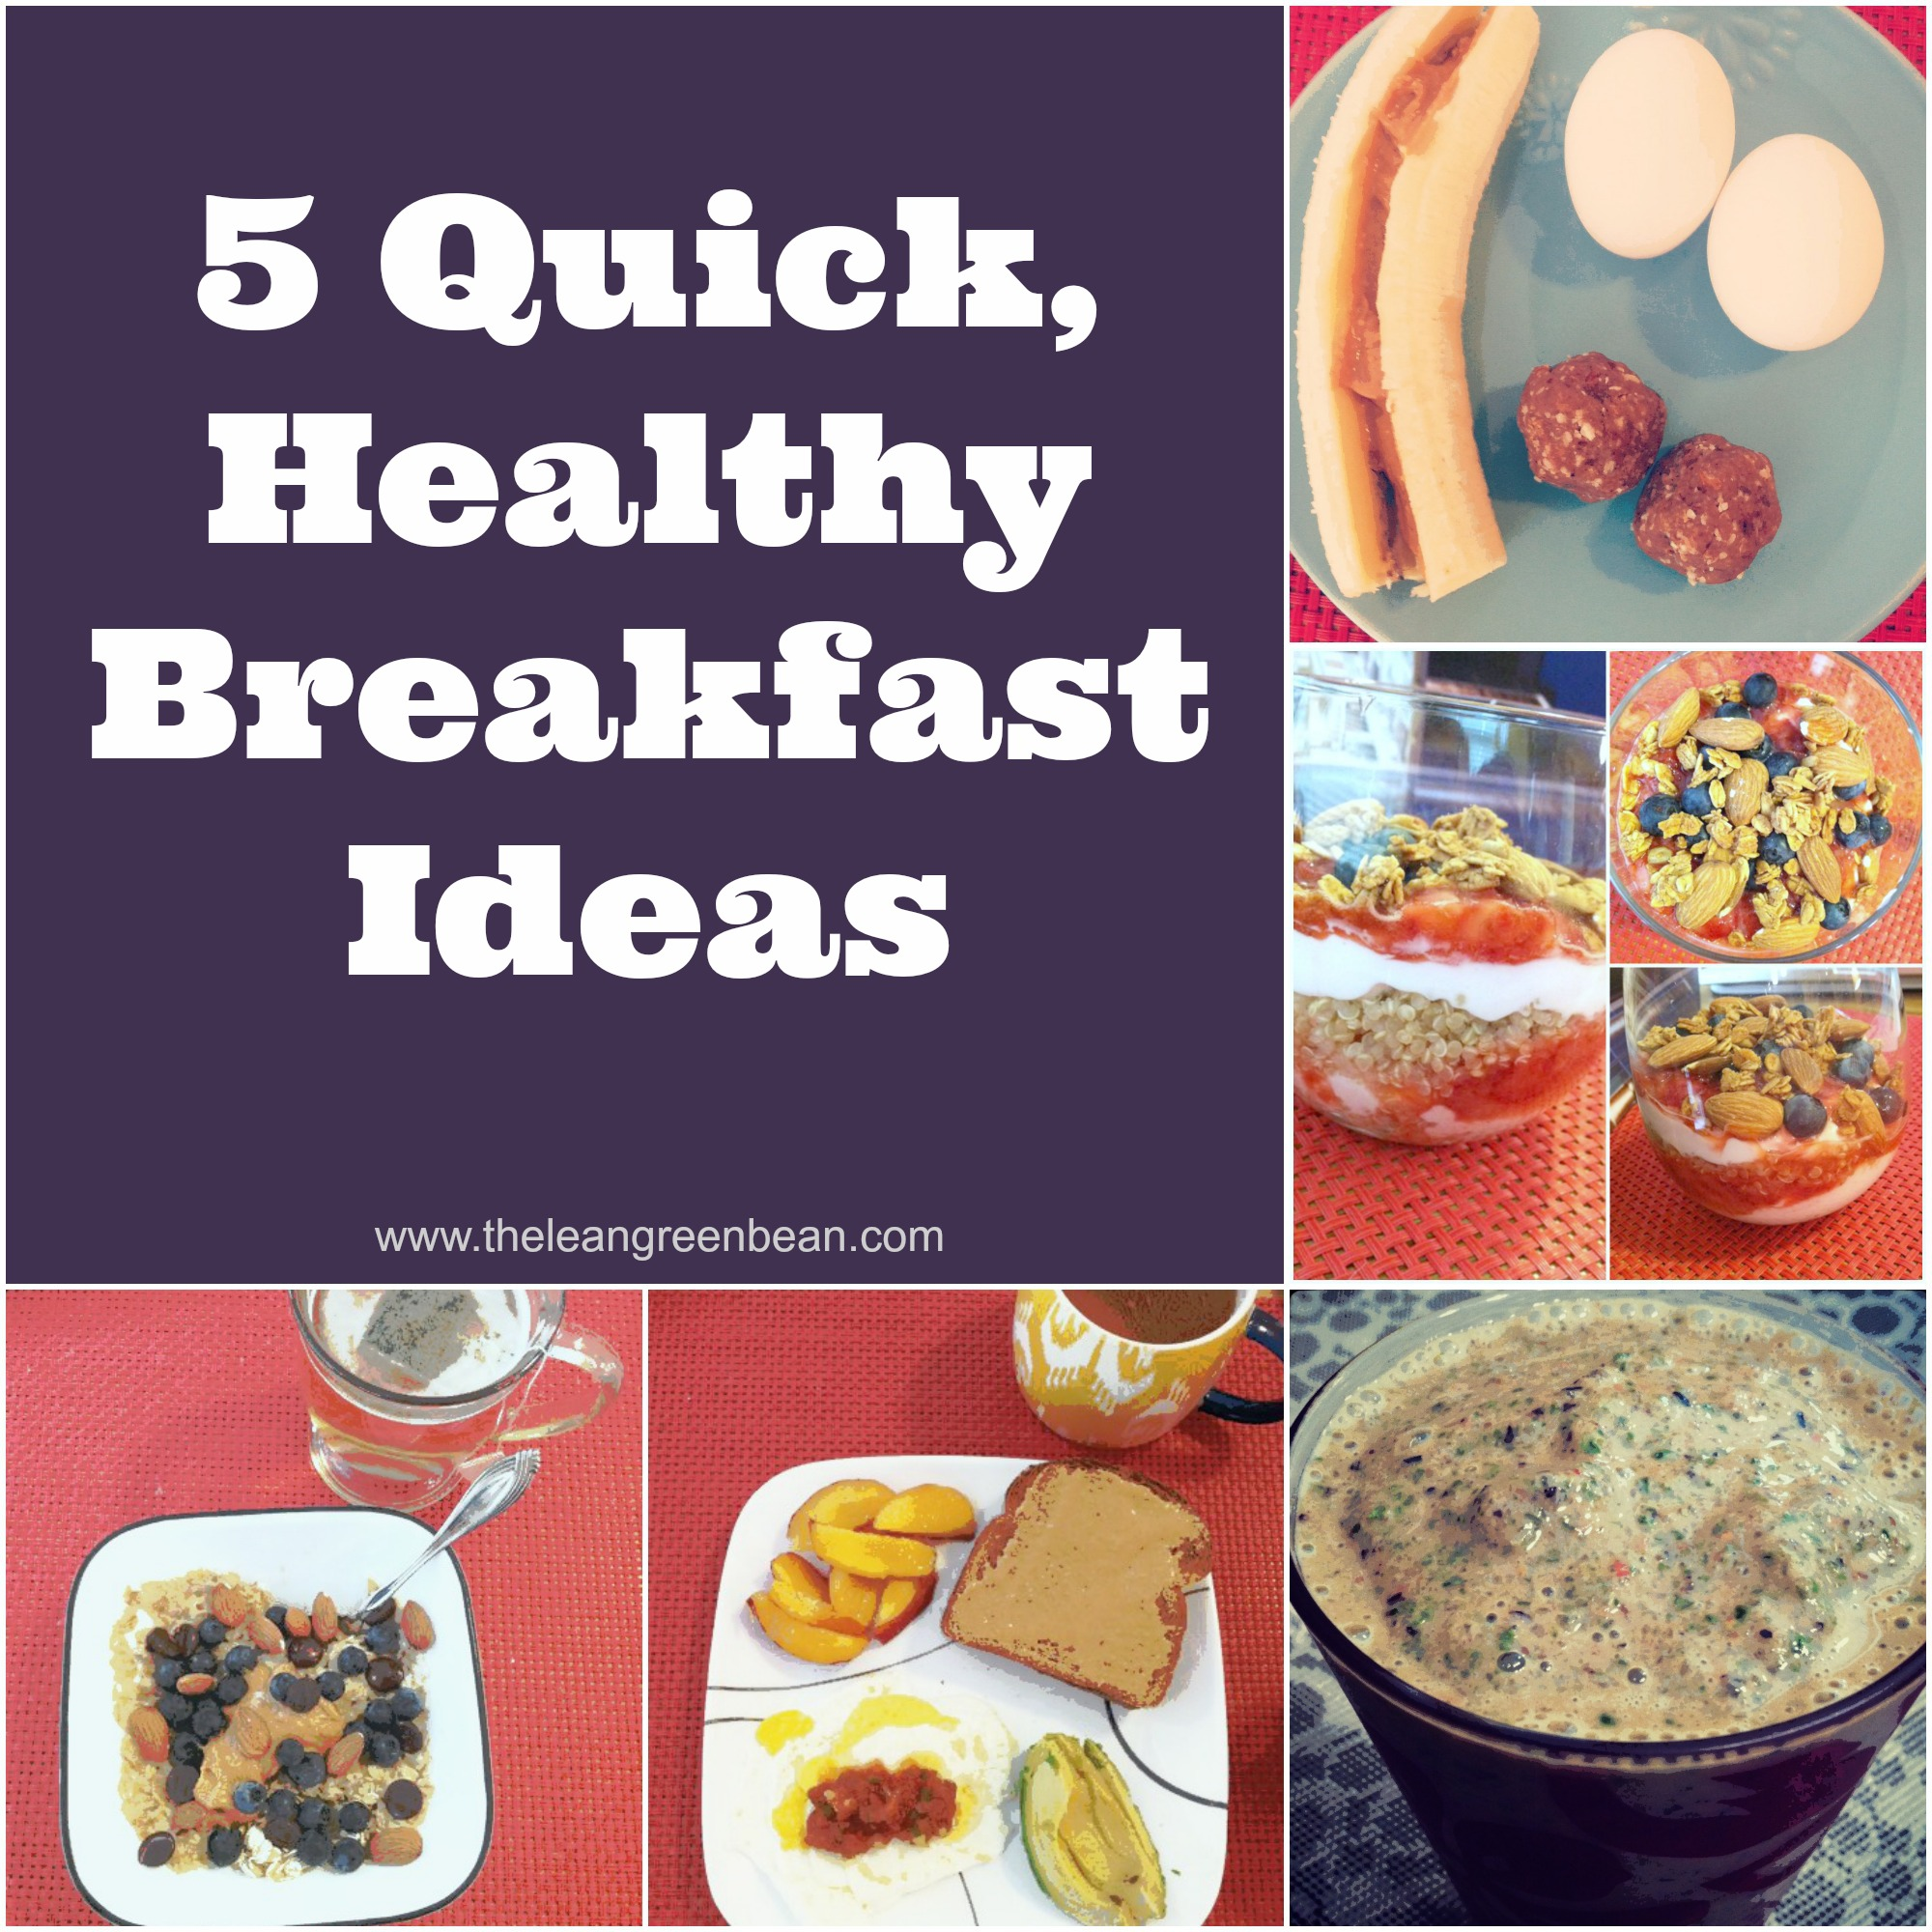 Are your mornings super busy? That's no excuse to skip breakfast! Here are 5 quick, healthy breakfast ideas ready in 7 minutes or less!